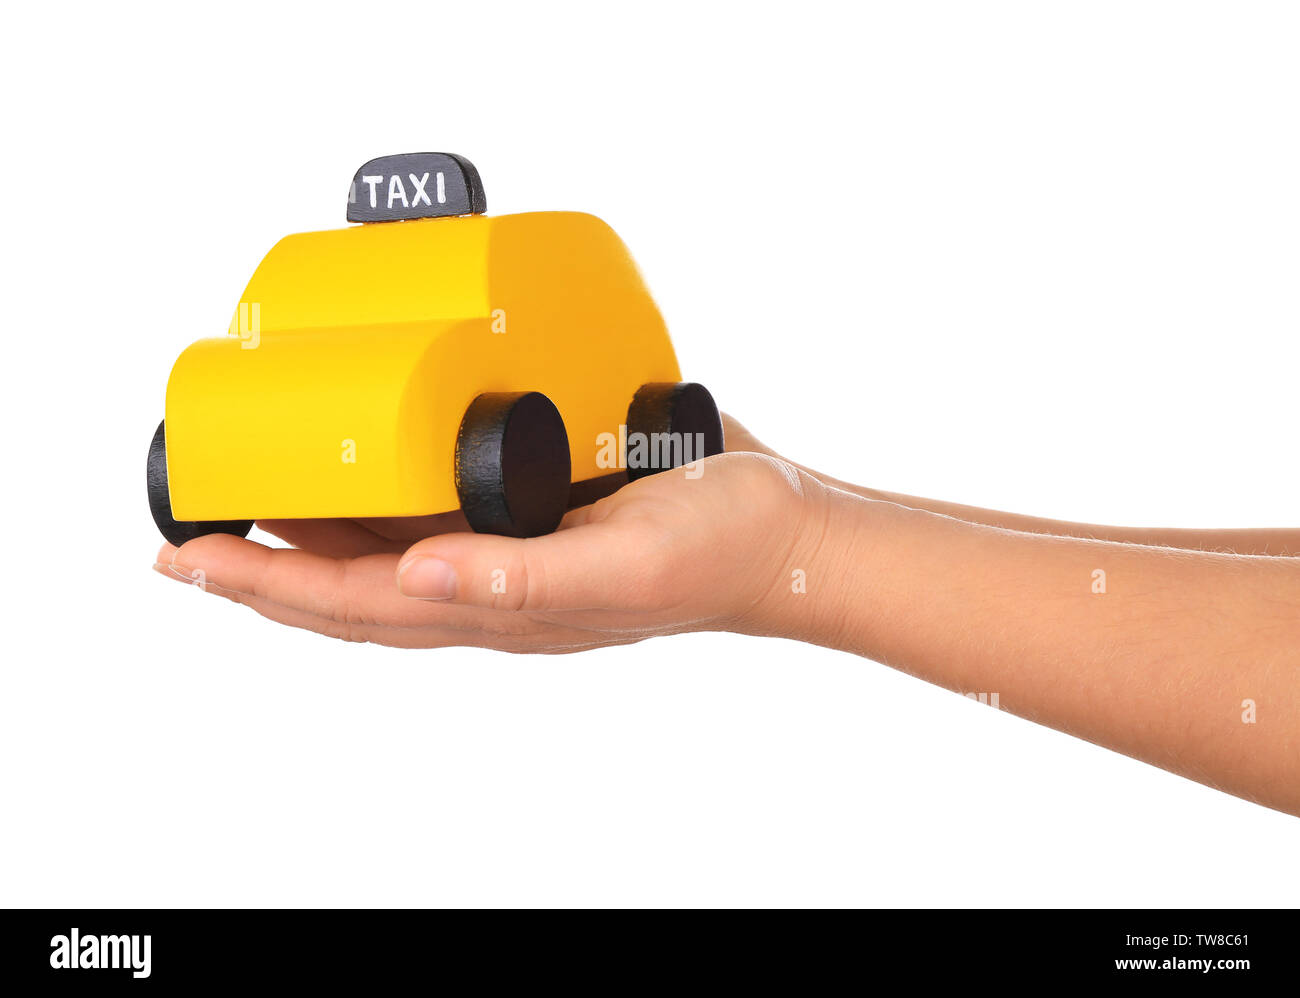 Woman holding yellow toy taxi cab on white background - Stock Image